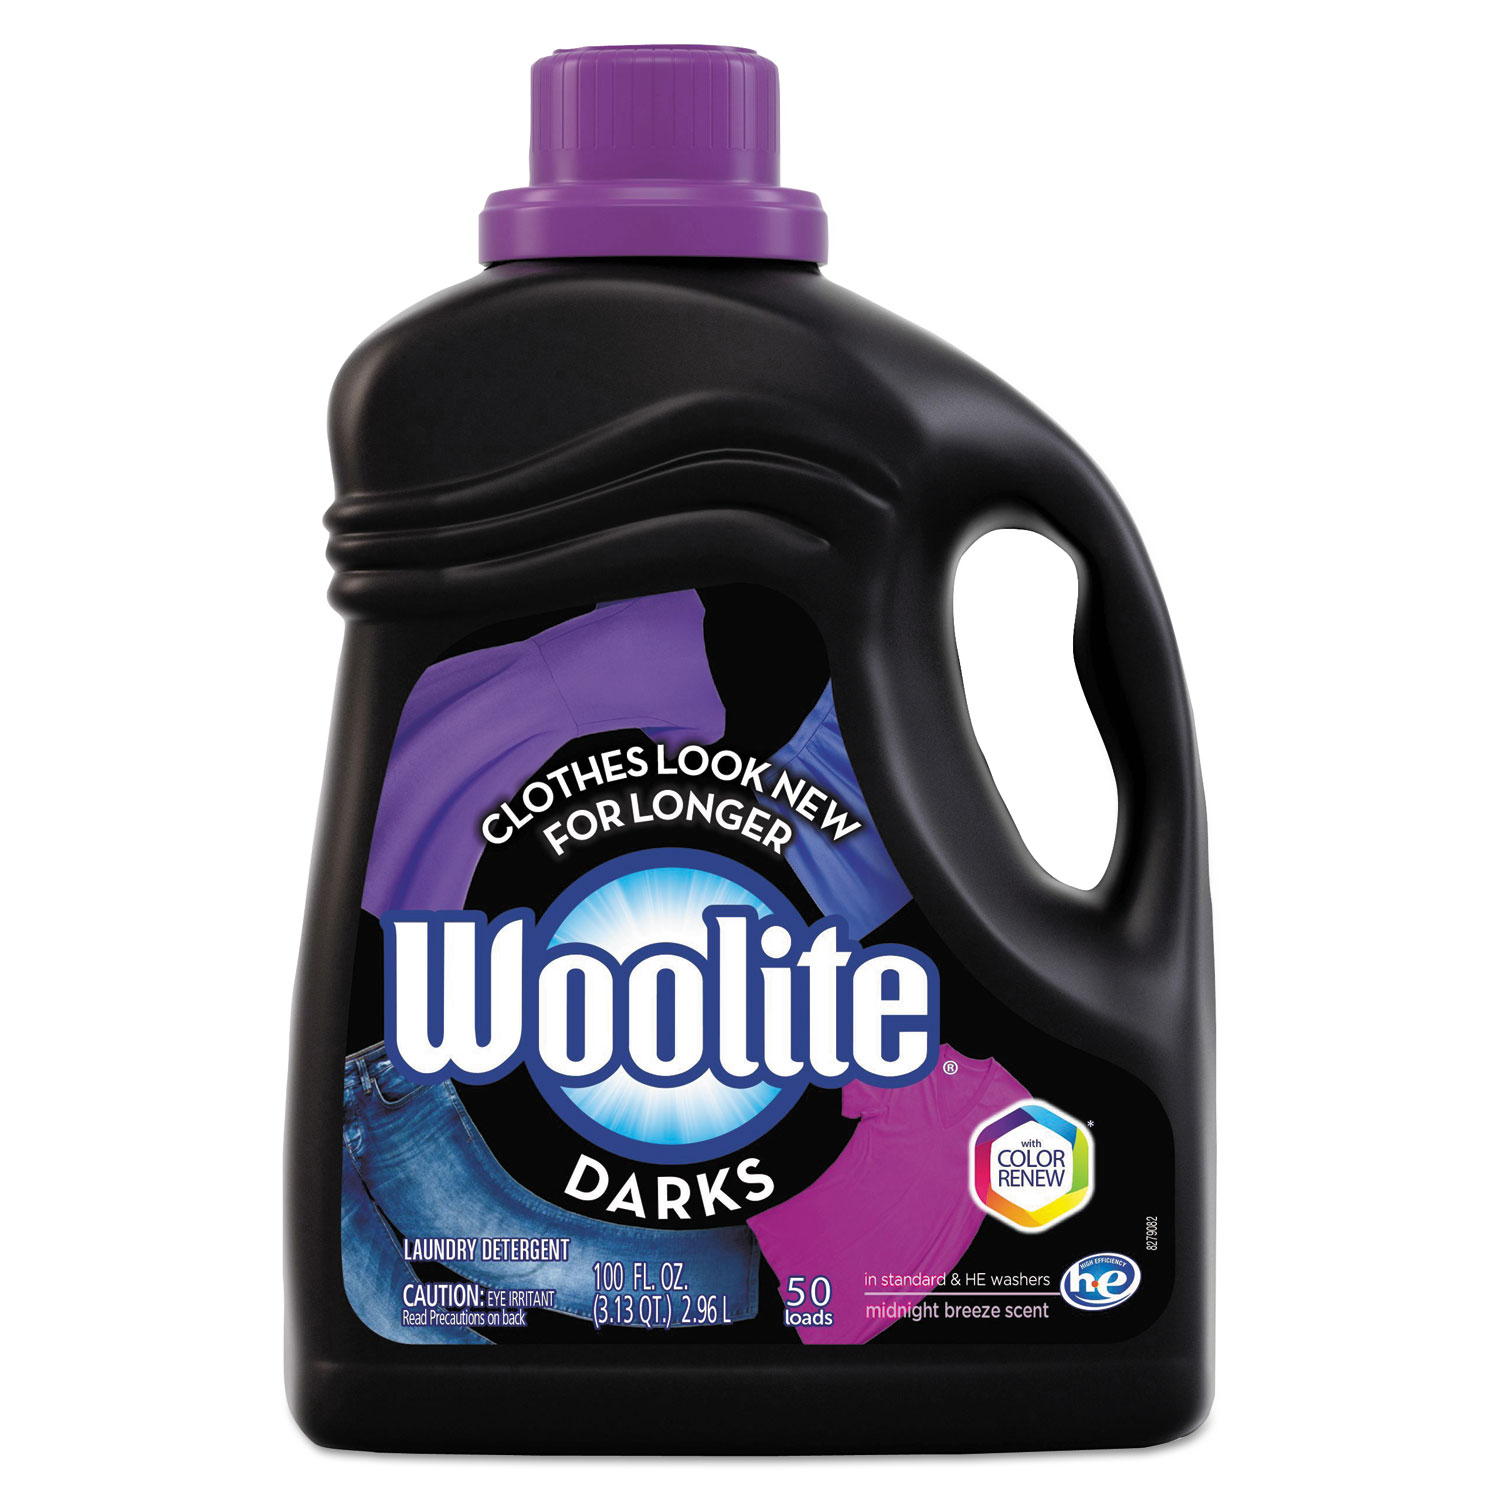 Dark Care Laundry Detergent Thumbnail 1 2